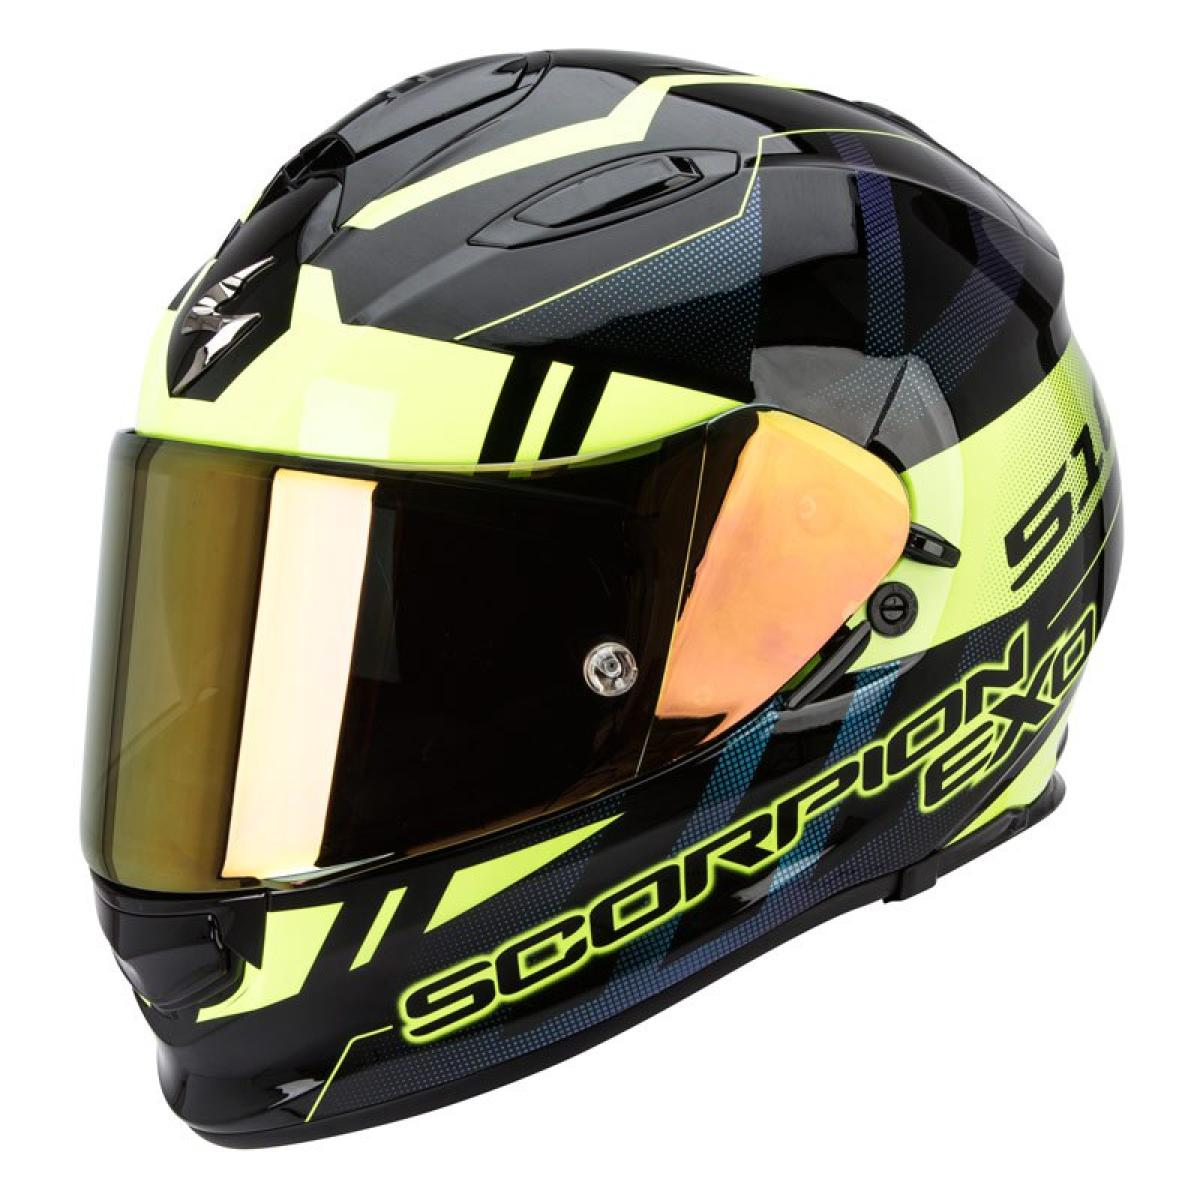 casque moto integral scorpion exo 510 air stage noir jaune fluo. Black Bedroom Furniture Sets. Home Design Ideas